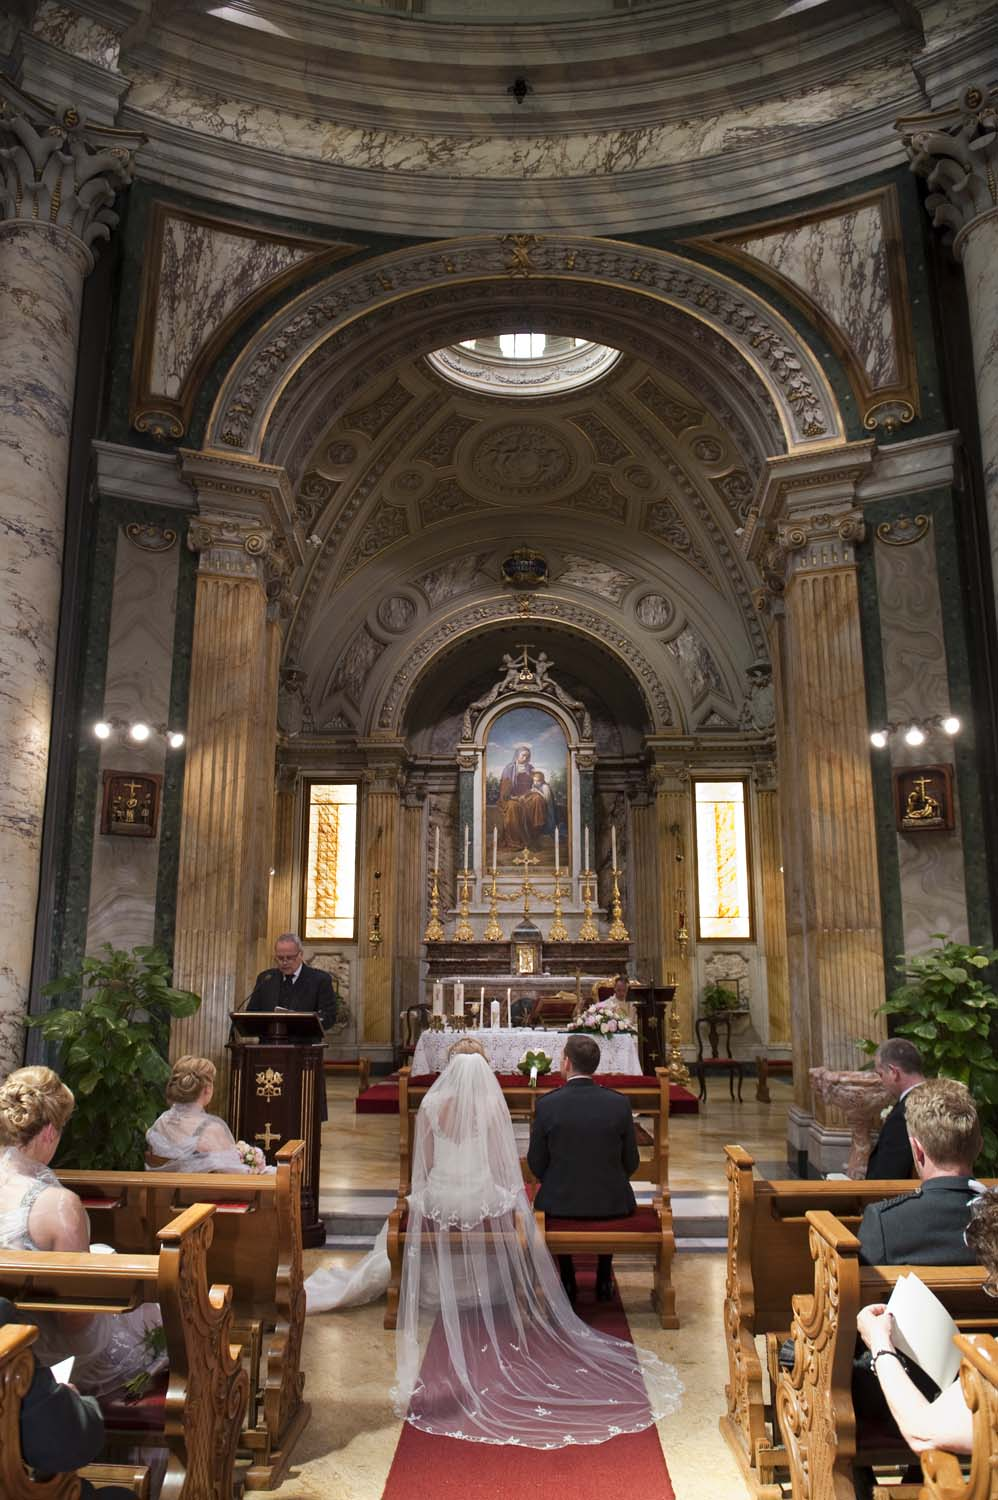 a lovely wedding in the Vatican, an unique church to celebrate intimate weddings